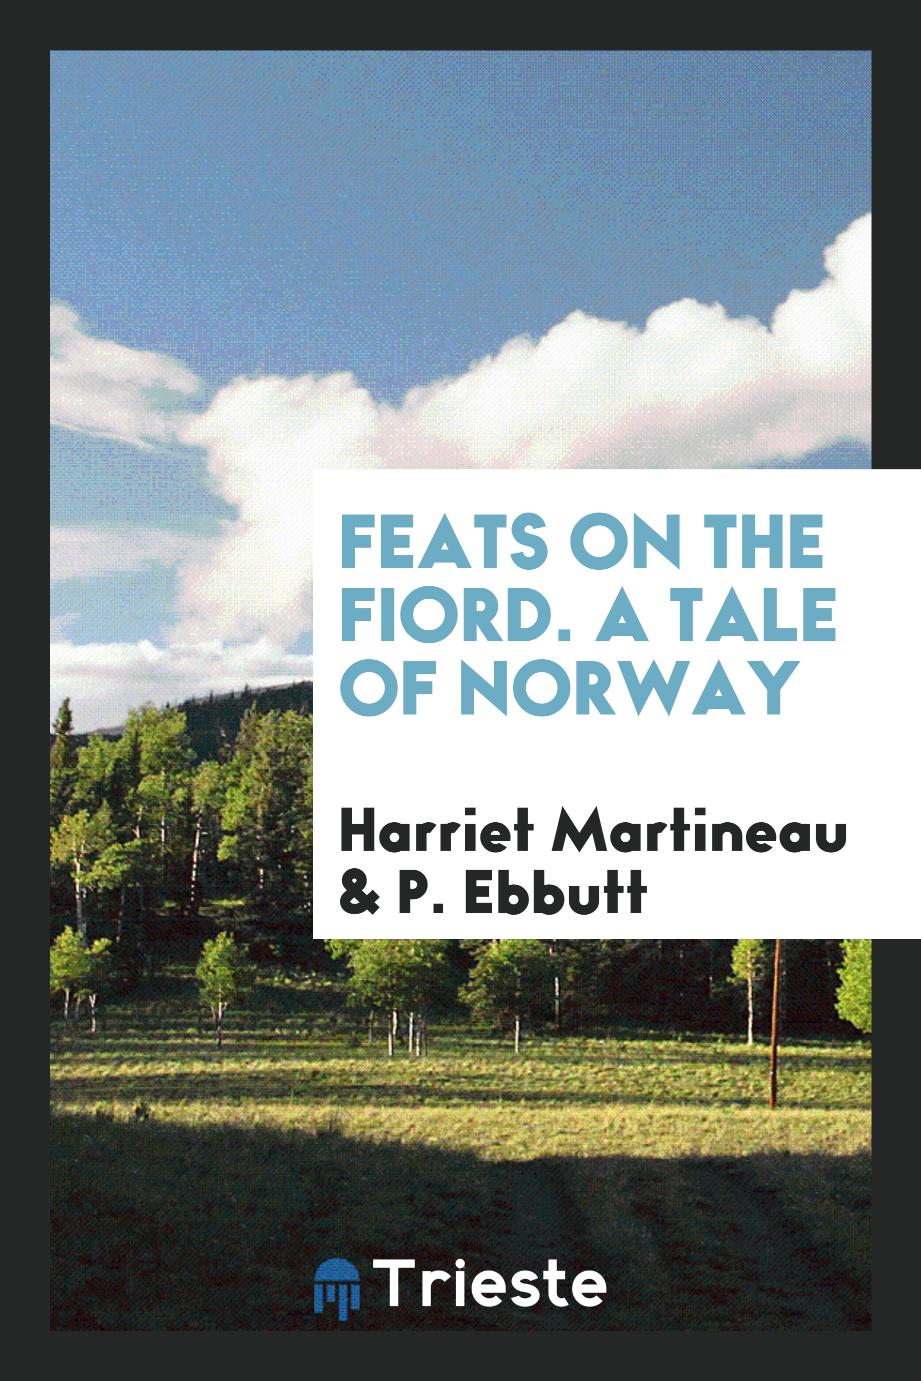 Feats on the fiord. A tale of Norway